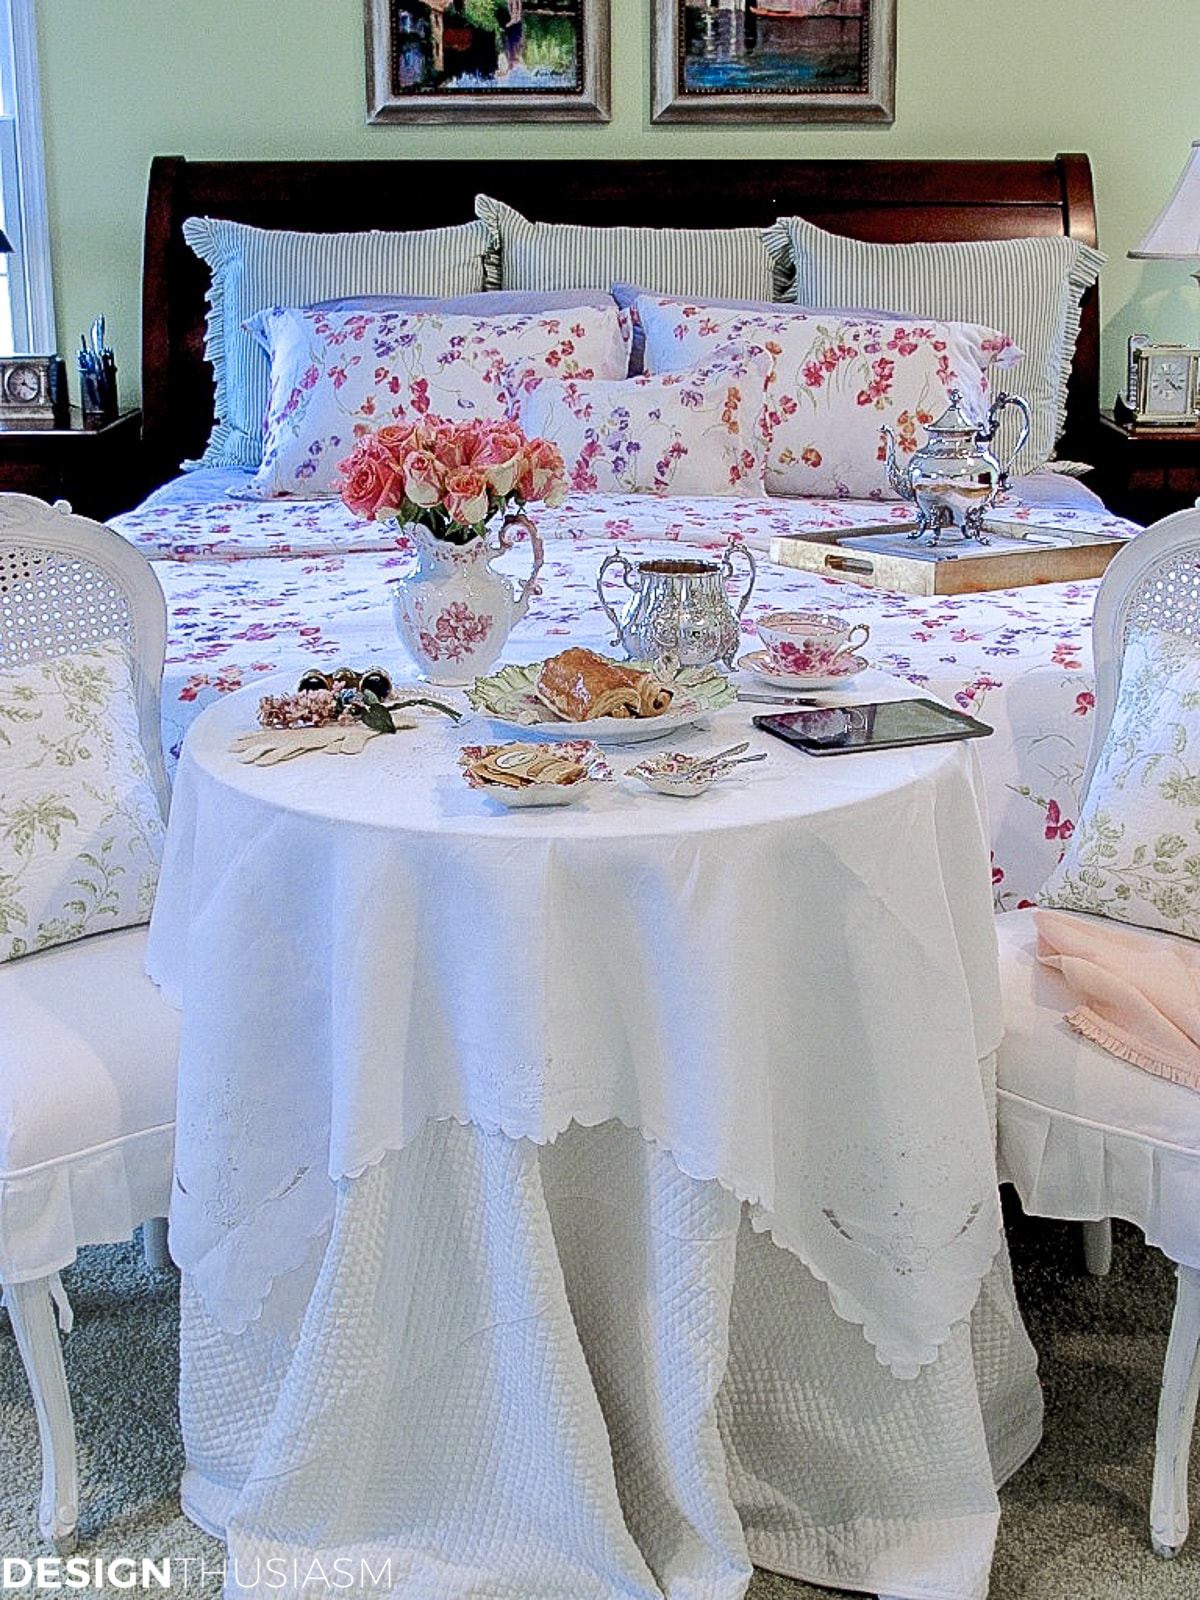 master bedroom decor with a french style breakfast table